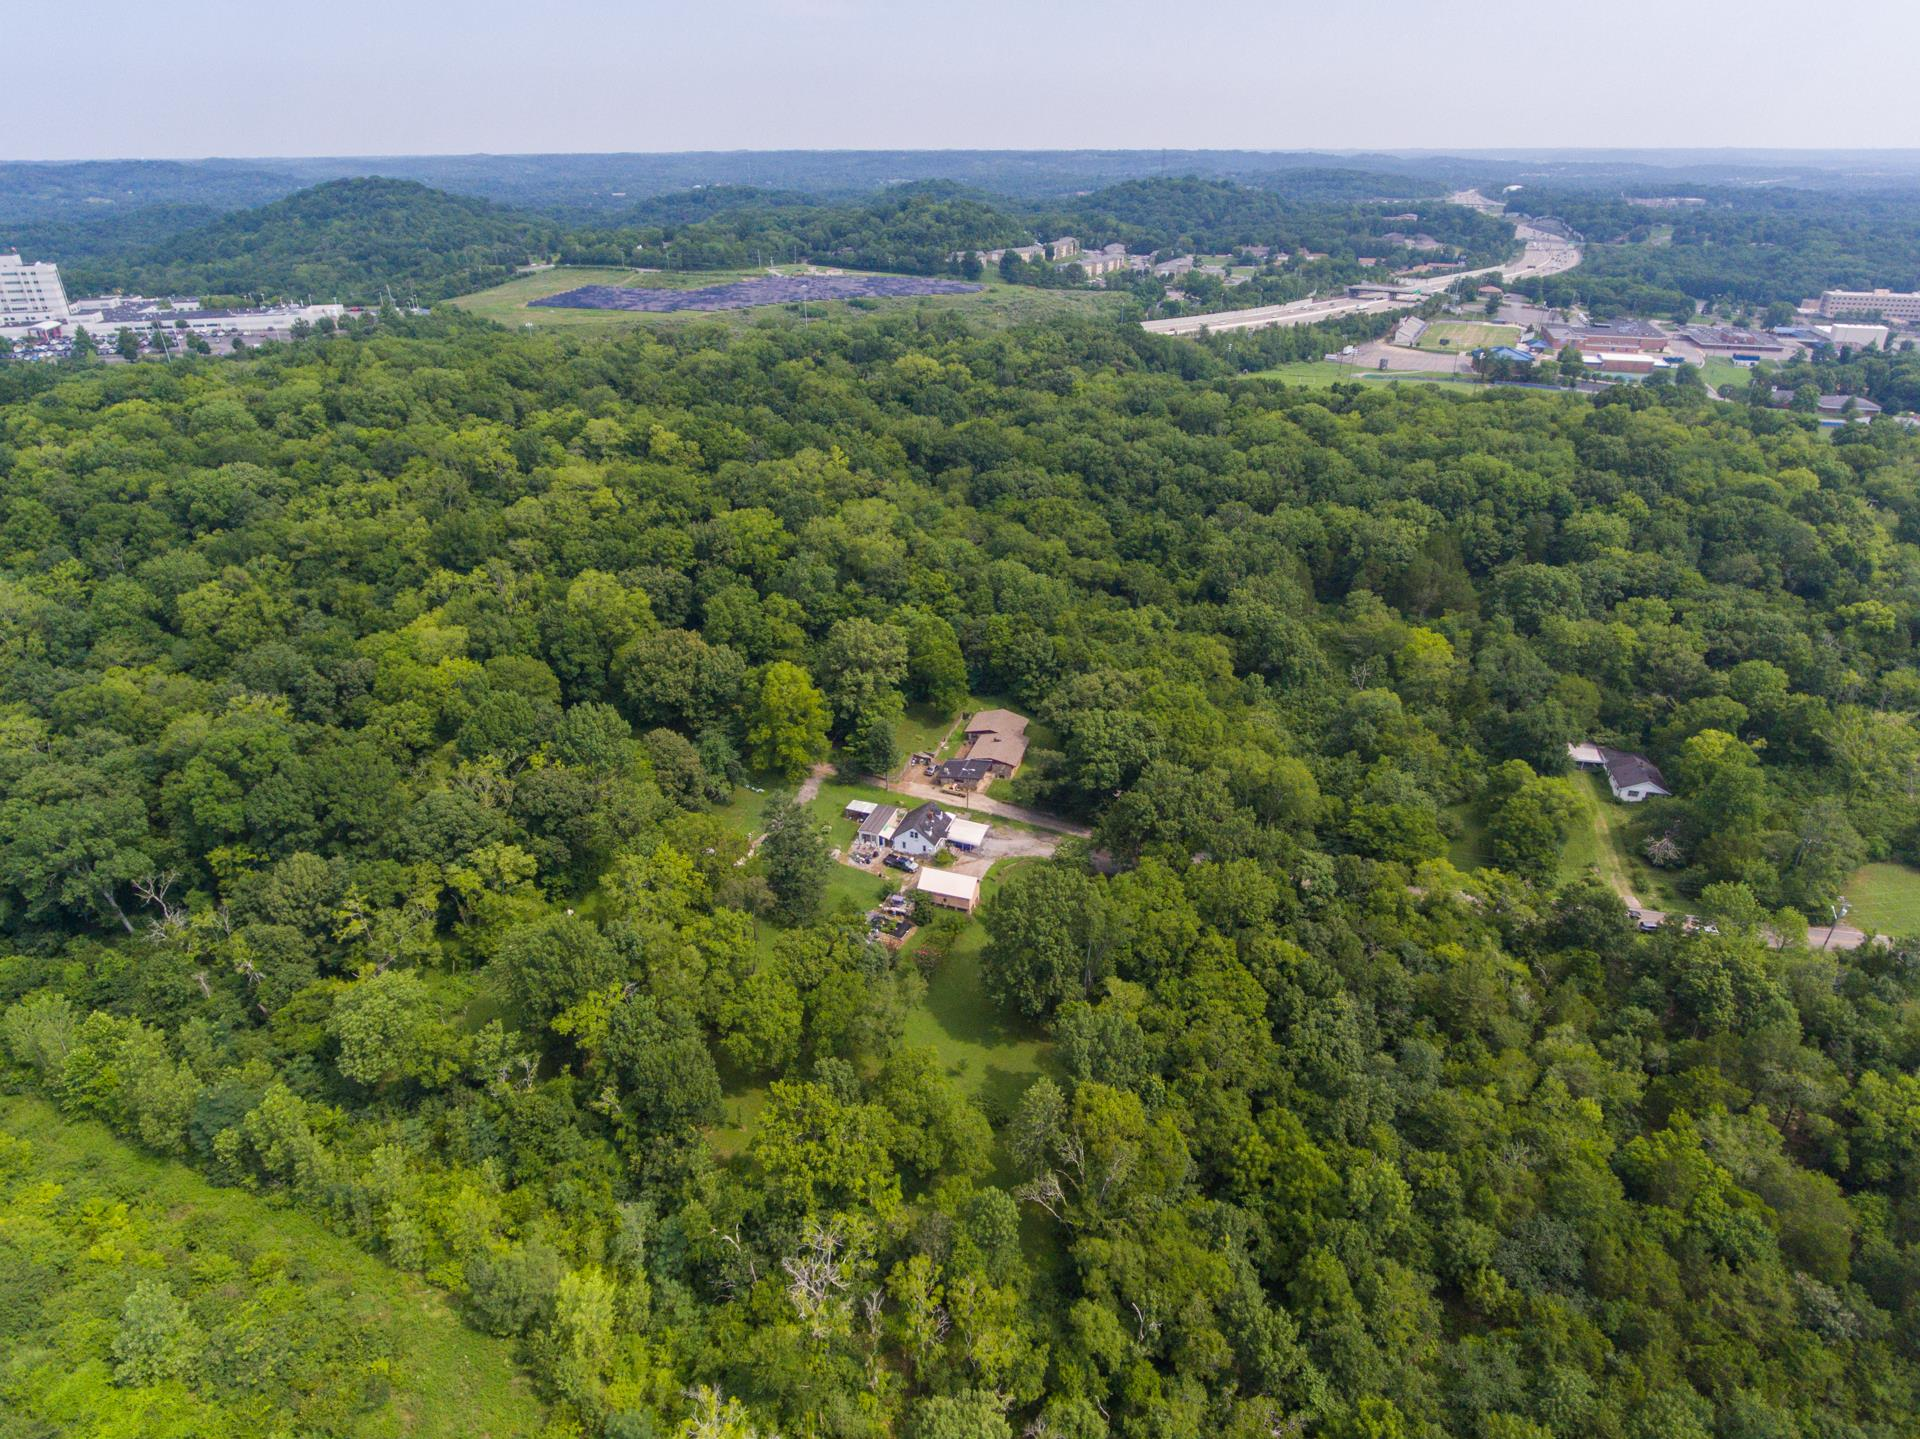 620 Cheron Rd (Creative Way), Madison, TN 37115 - Madison, TN real estate listing